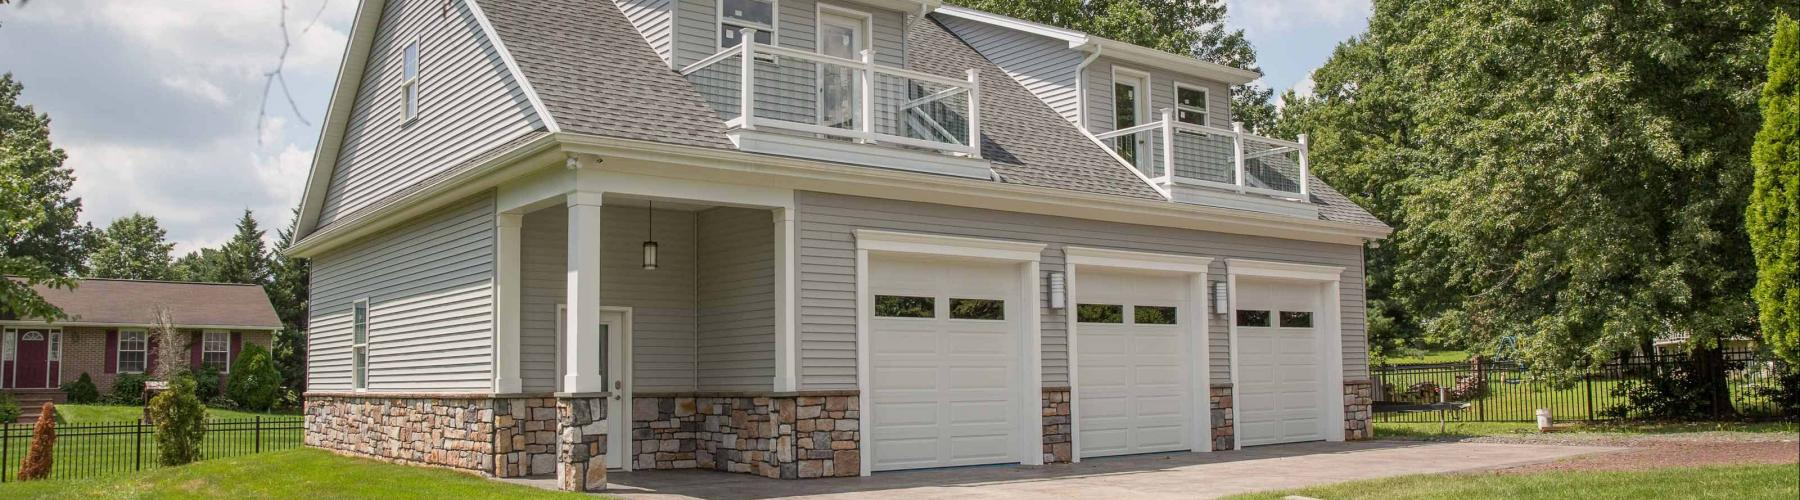 New garage by Stable Hollow Construction